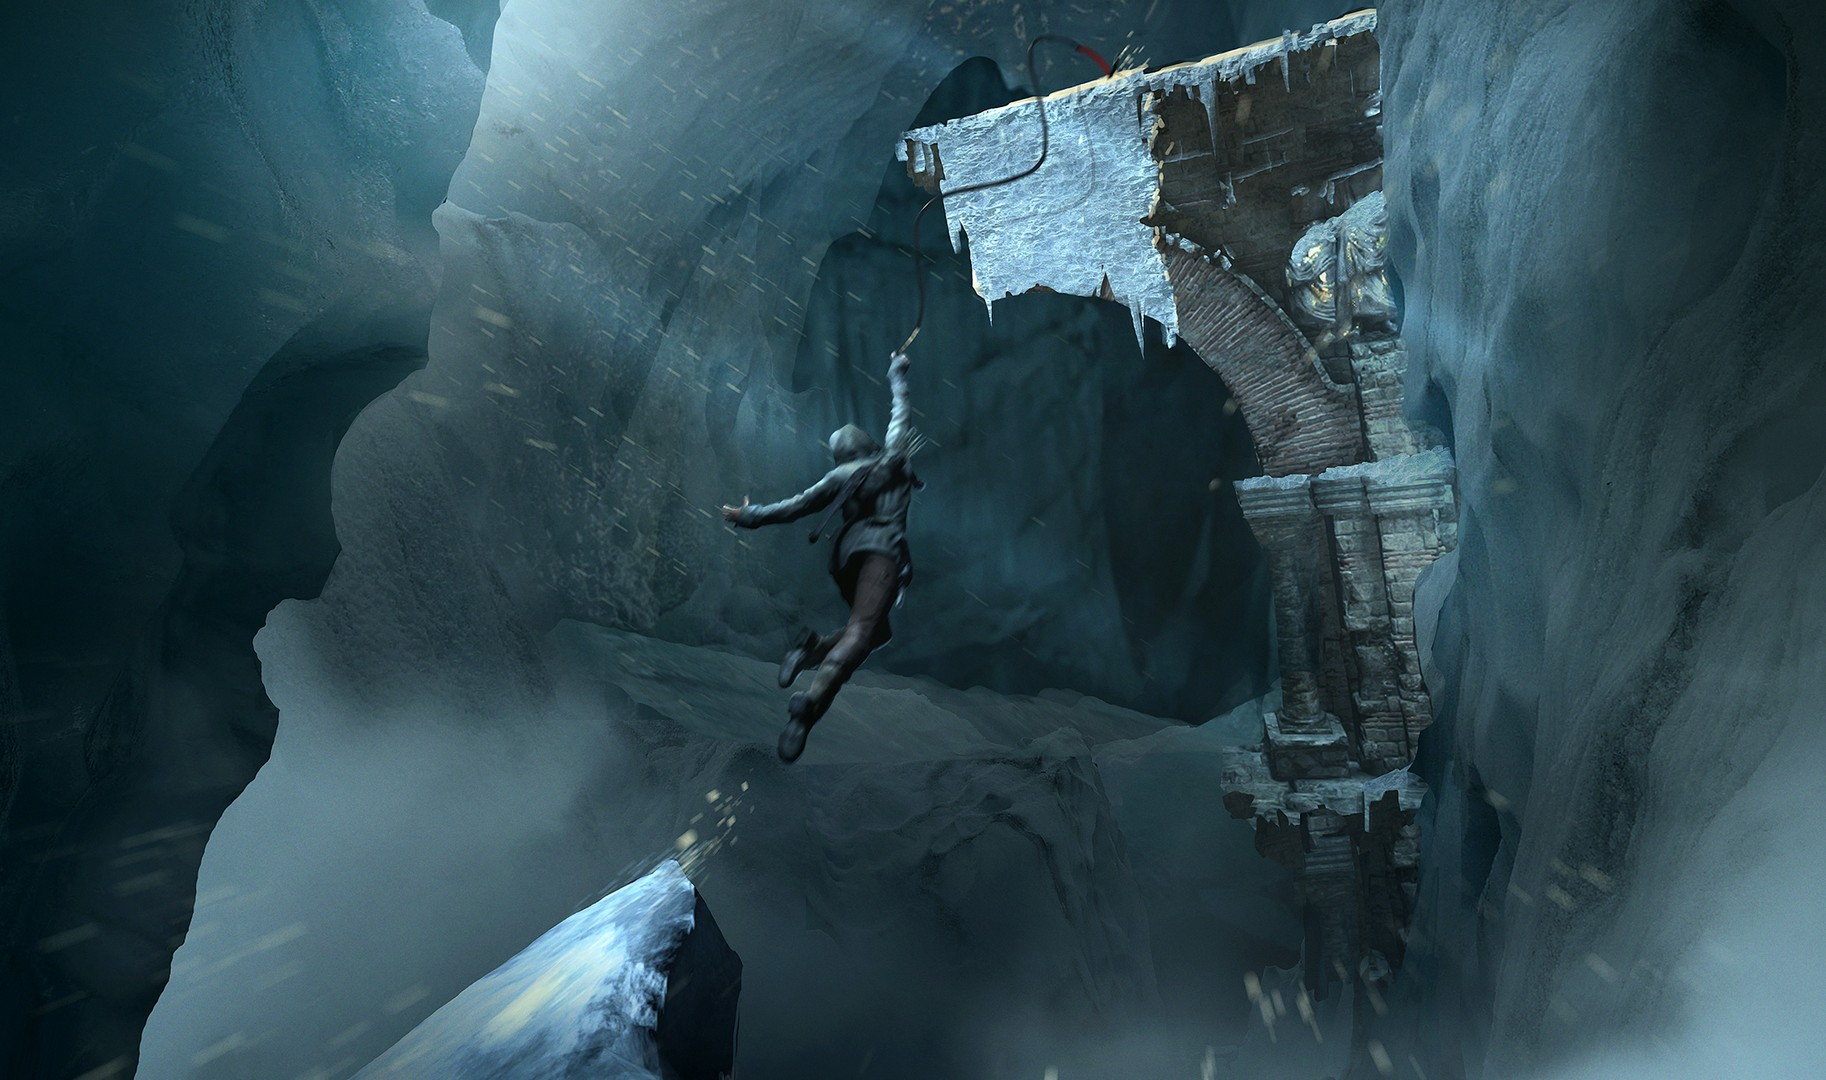 fkd3_rise-of-the-tomb-raider-concept-art-4.jpg